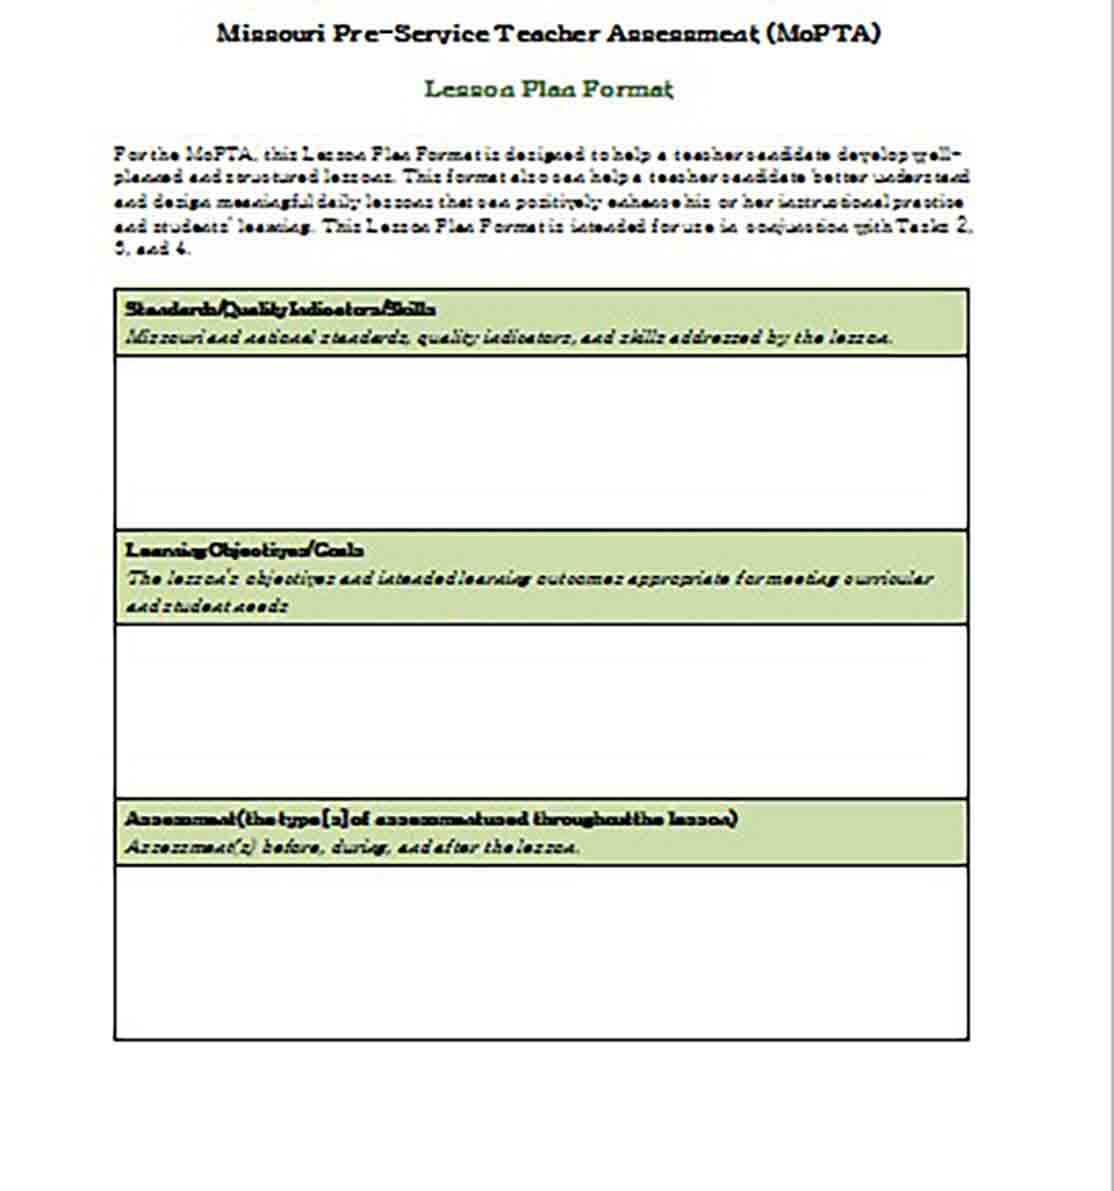 Lesson Plan Format templates Word